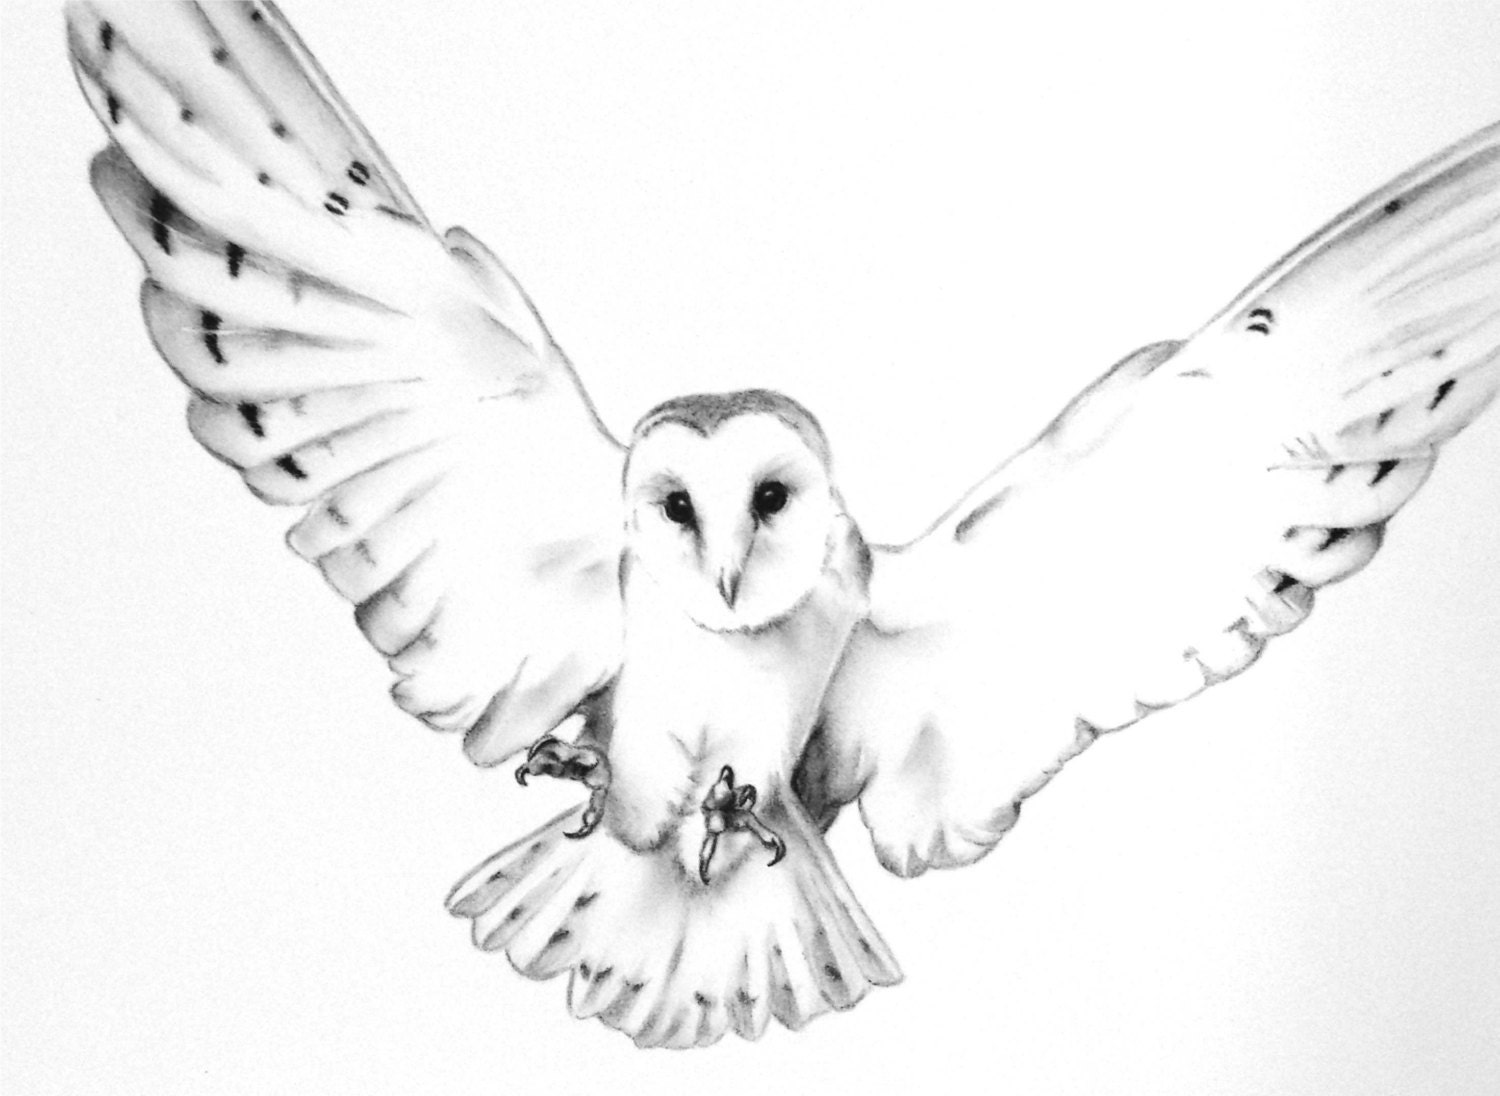 Flying owl pencil drawings - photo#12